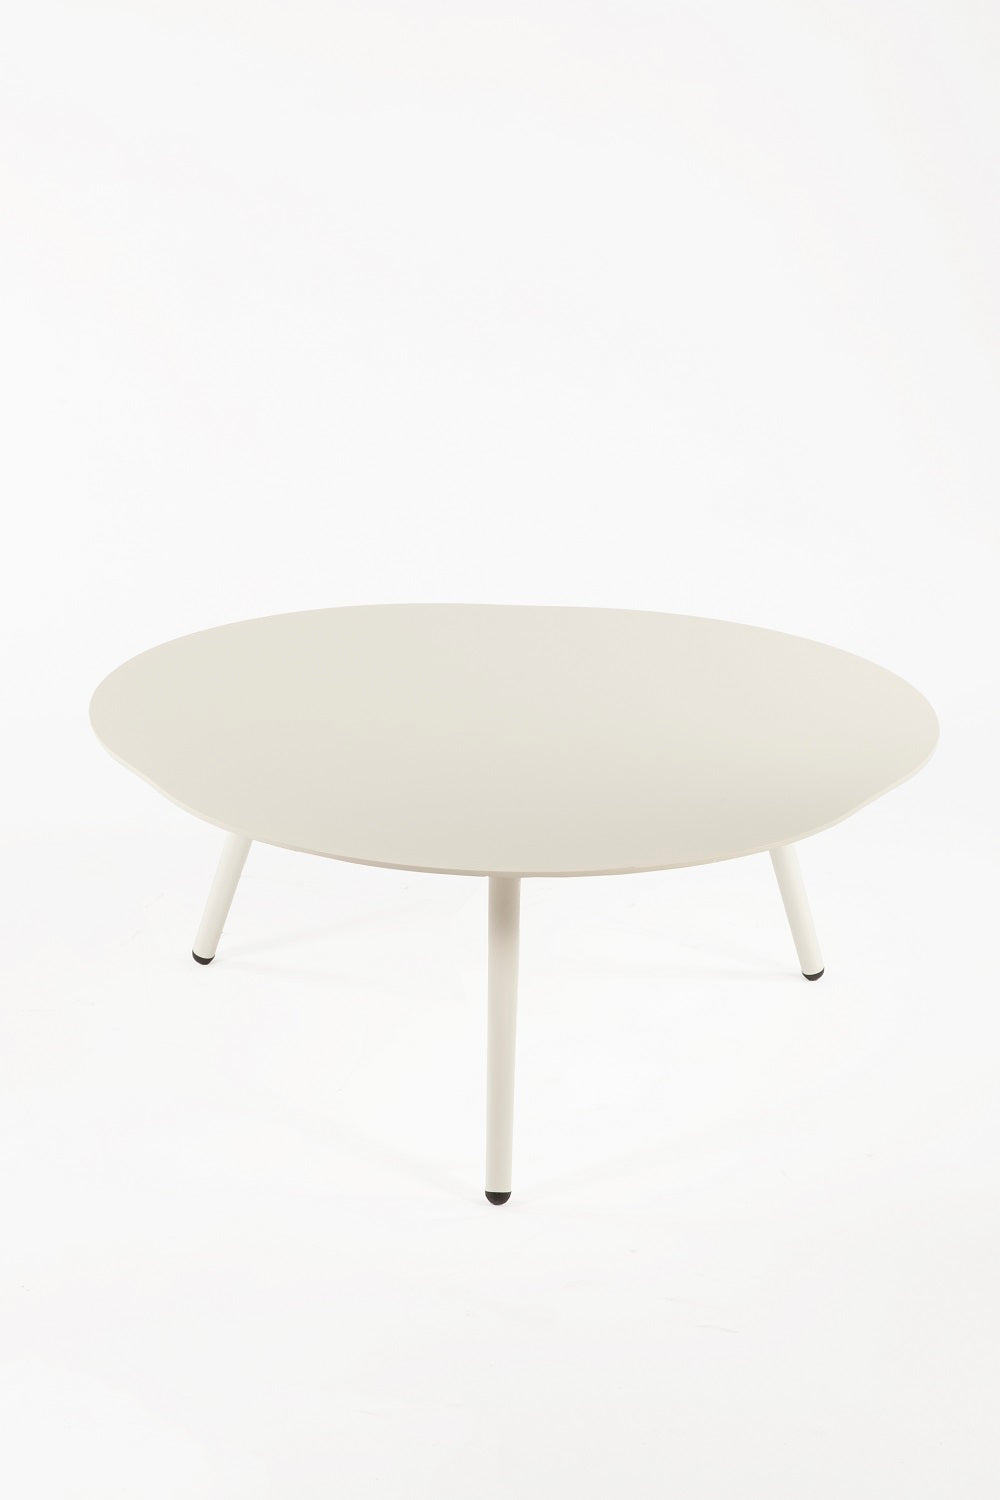 The Armhem Side Table